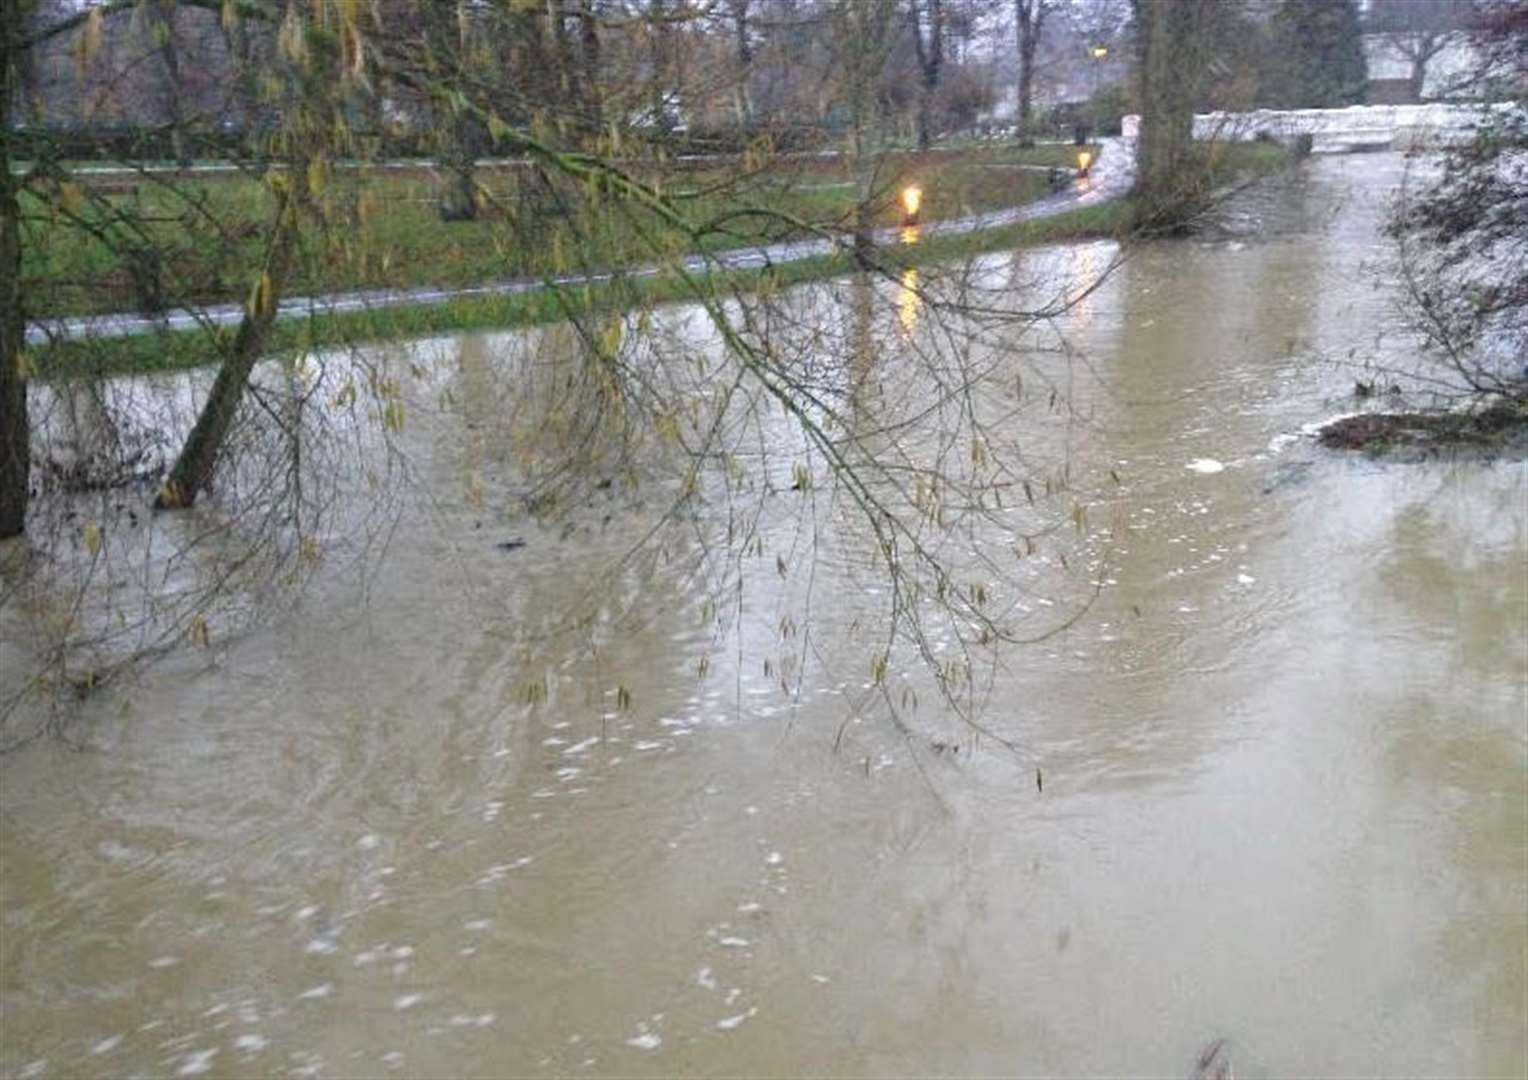 Heavy rain causes River Witham through Grantham to burst its banks